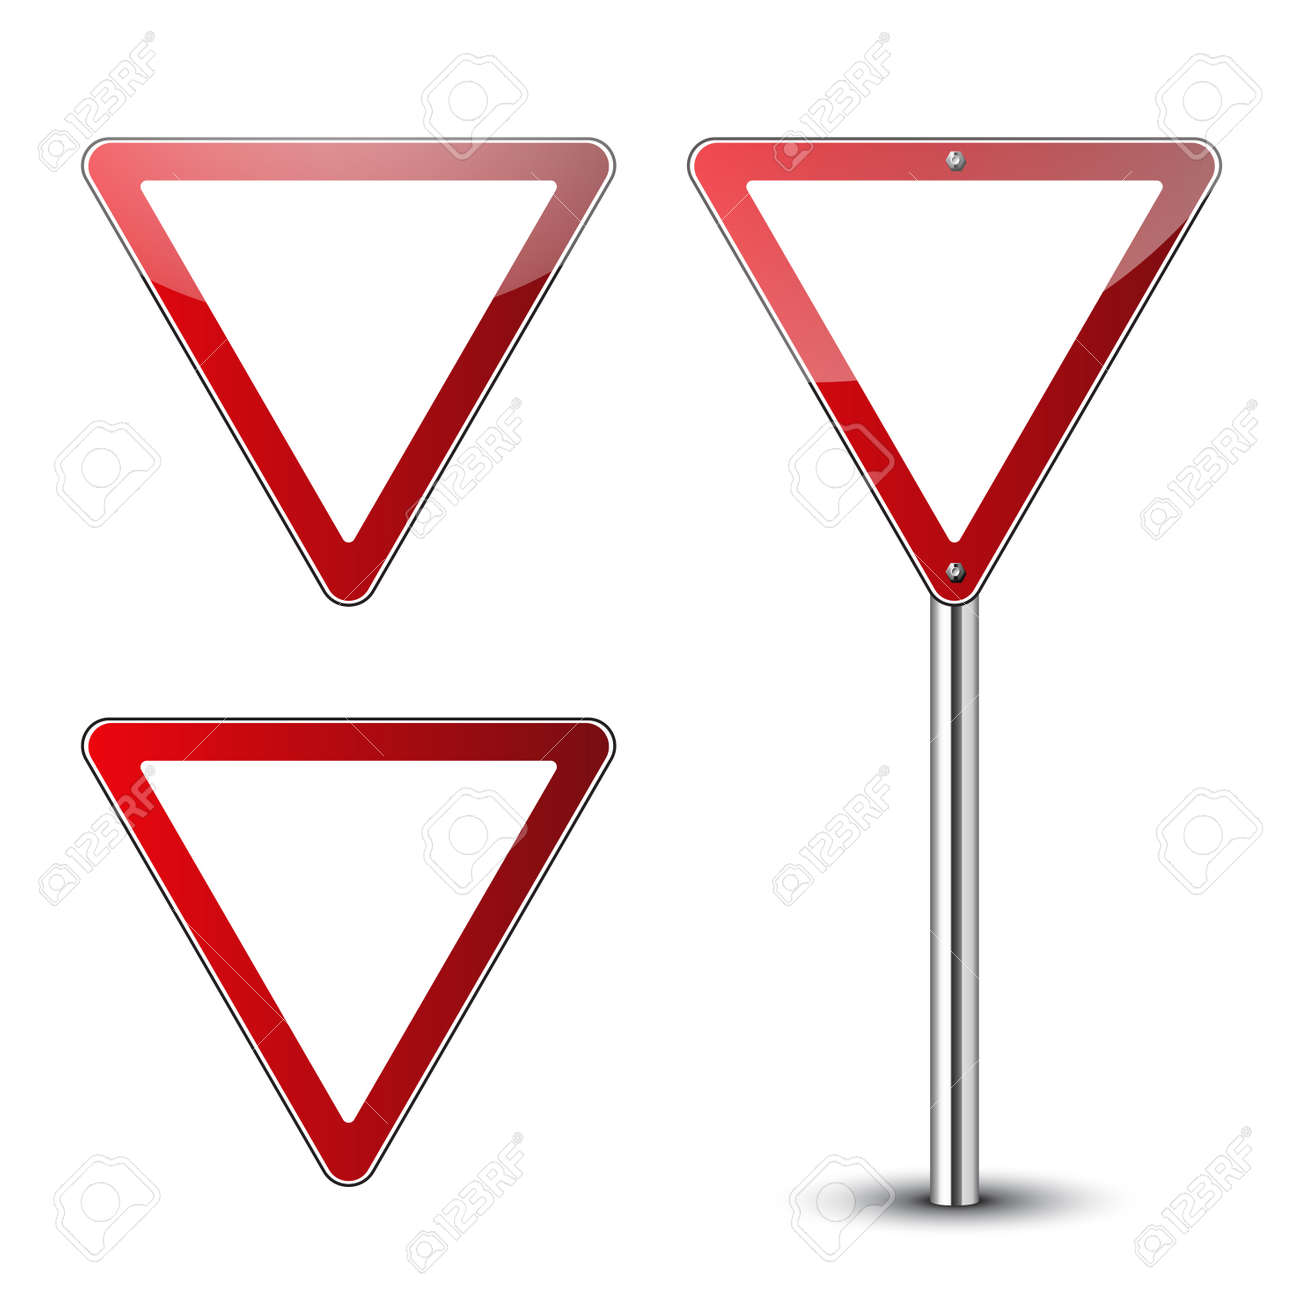 Yield Triangle Signs Blank Set Traffic Red Road Signs Isolated